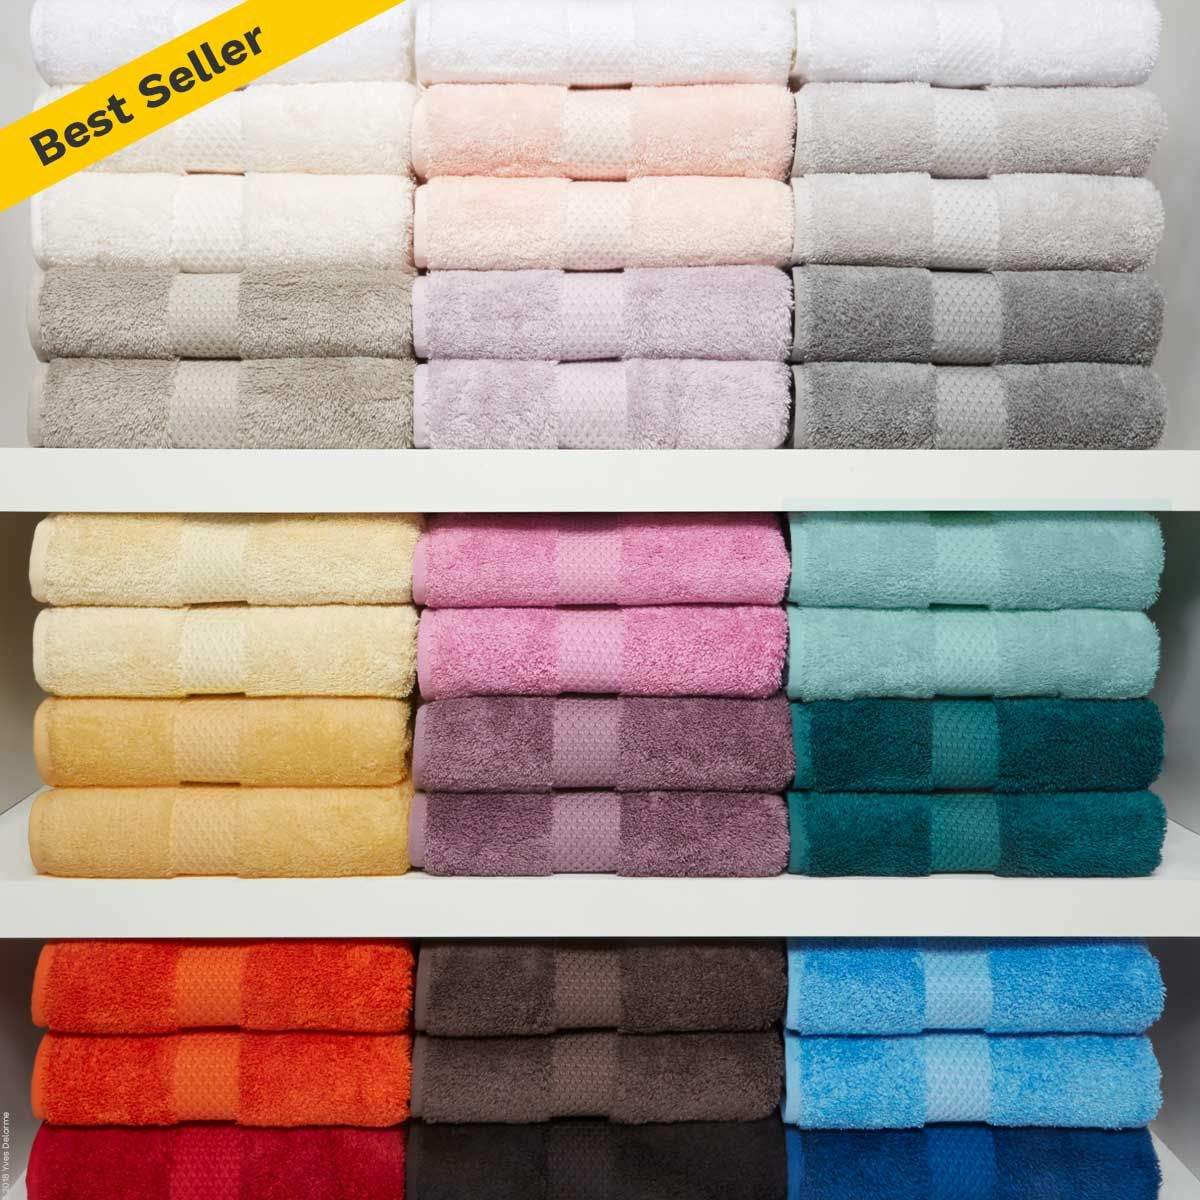 Etoile Bath Towels Towel Pioneer Linens Bed Linens Luxury